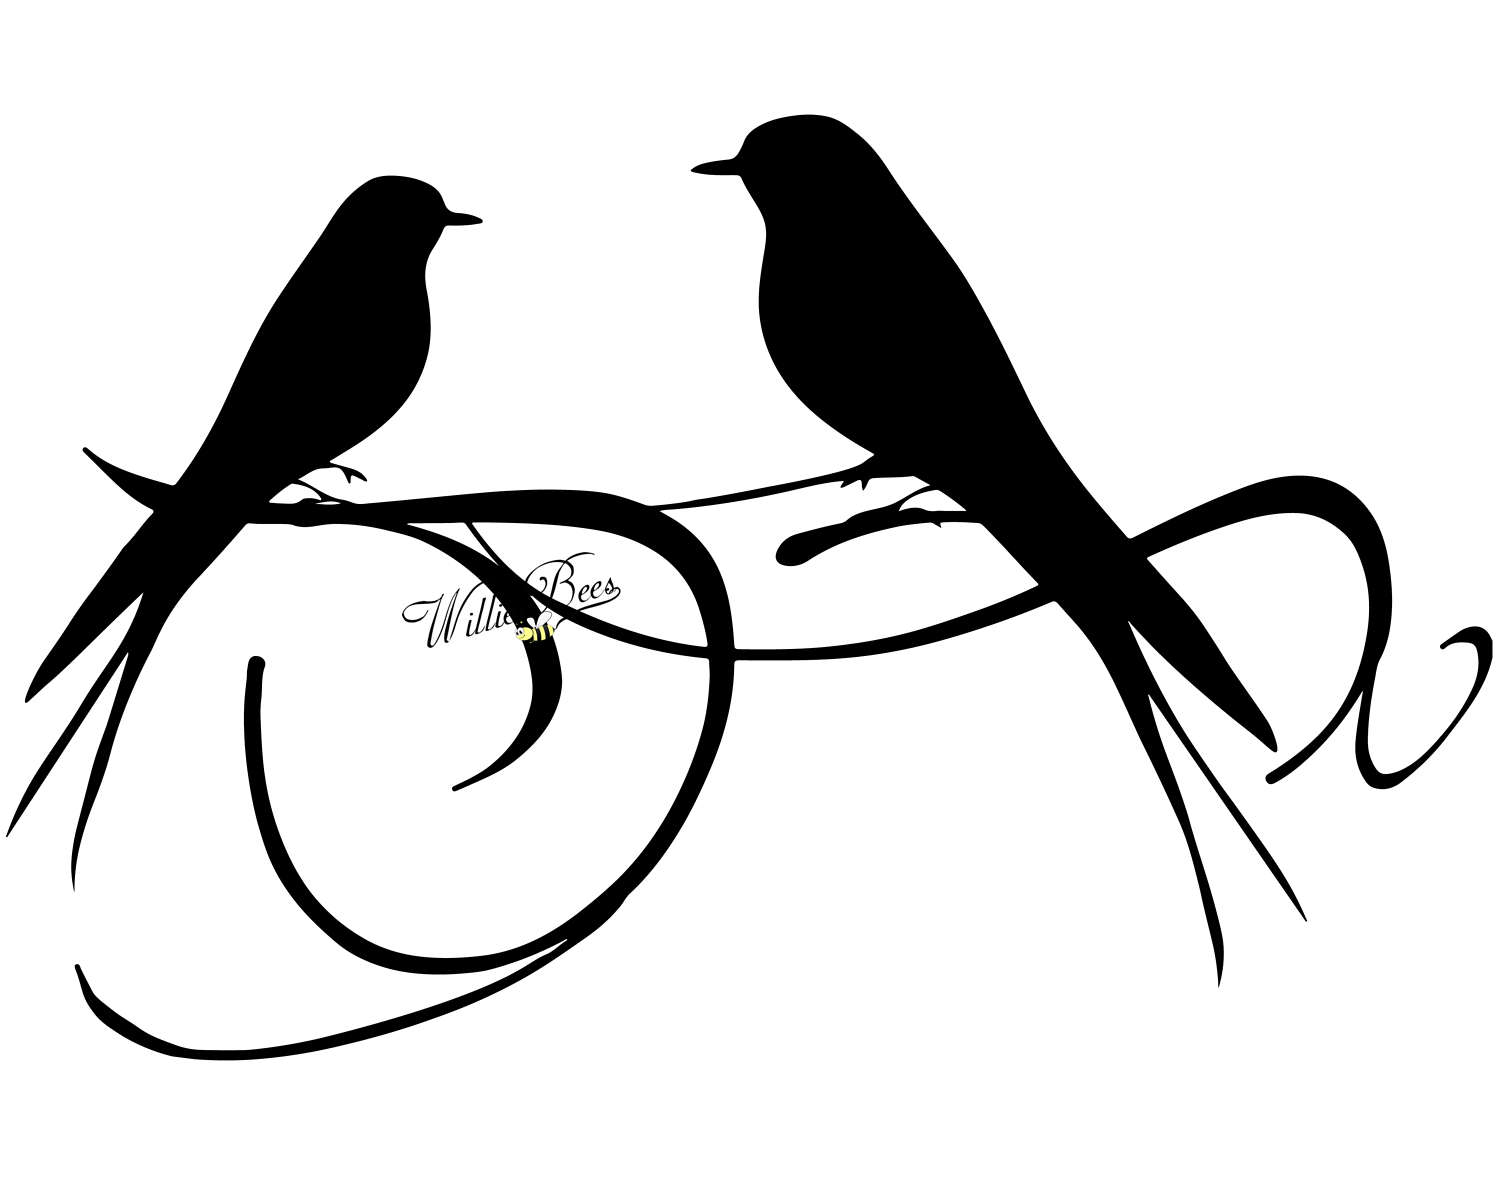 Love Birds Silhouette Clip Art At Getdrawings